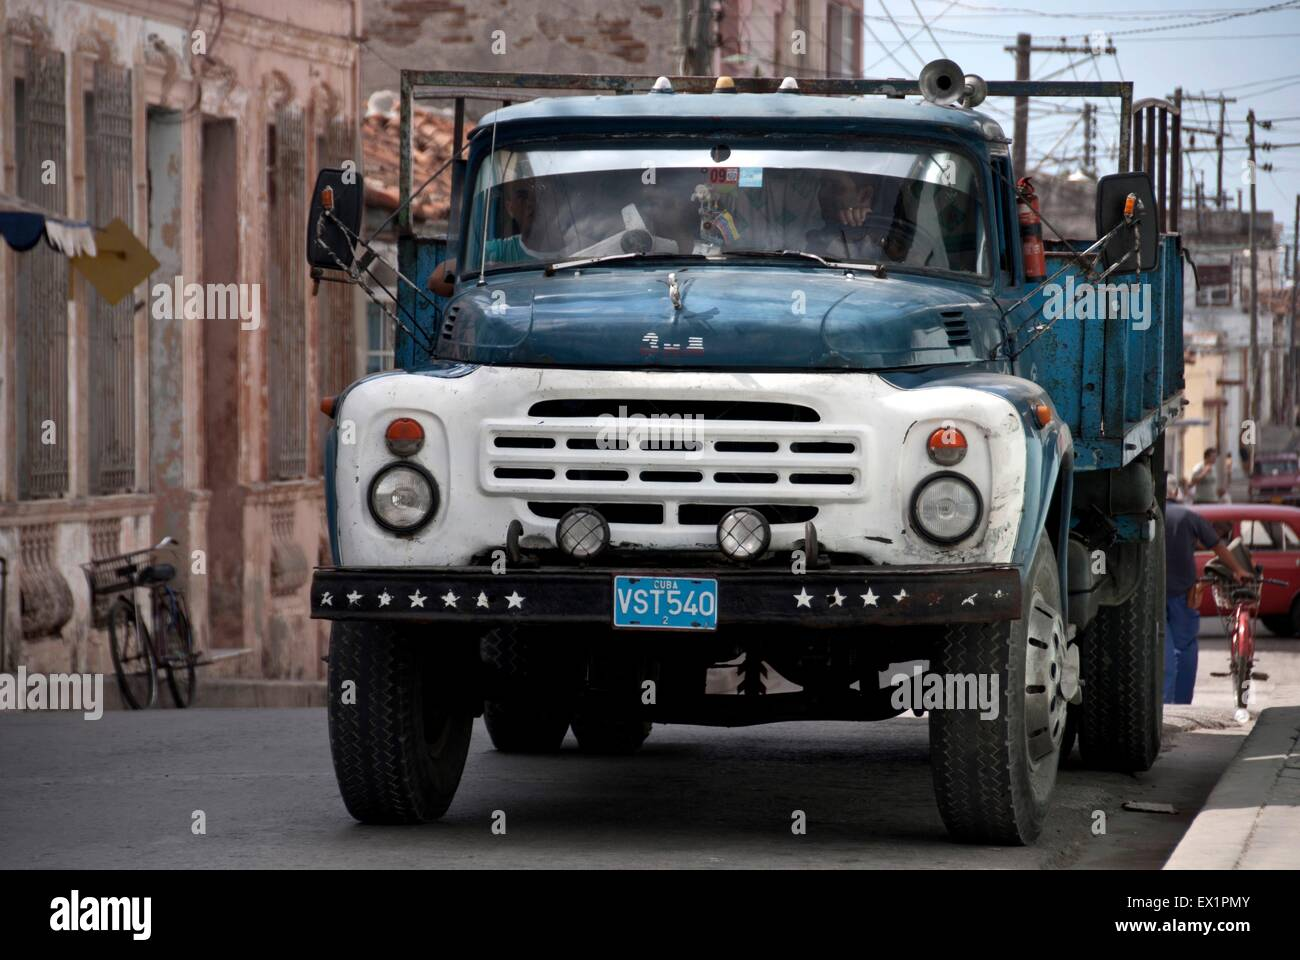 Zil Soviet Stock Photos & Zil Soviet Stock Images - Alamy on